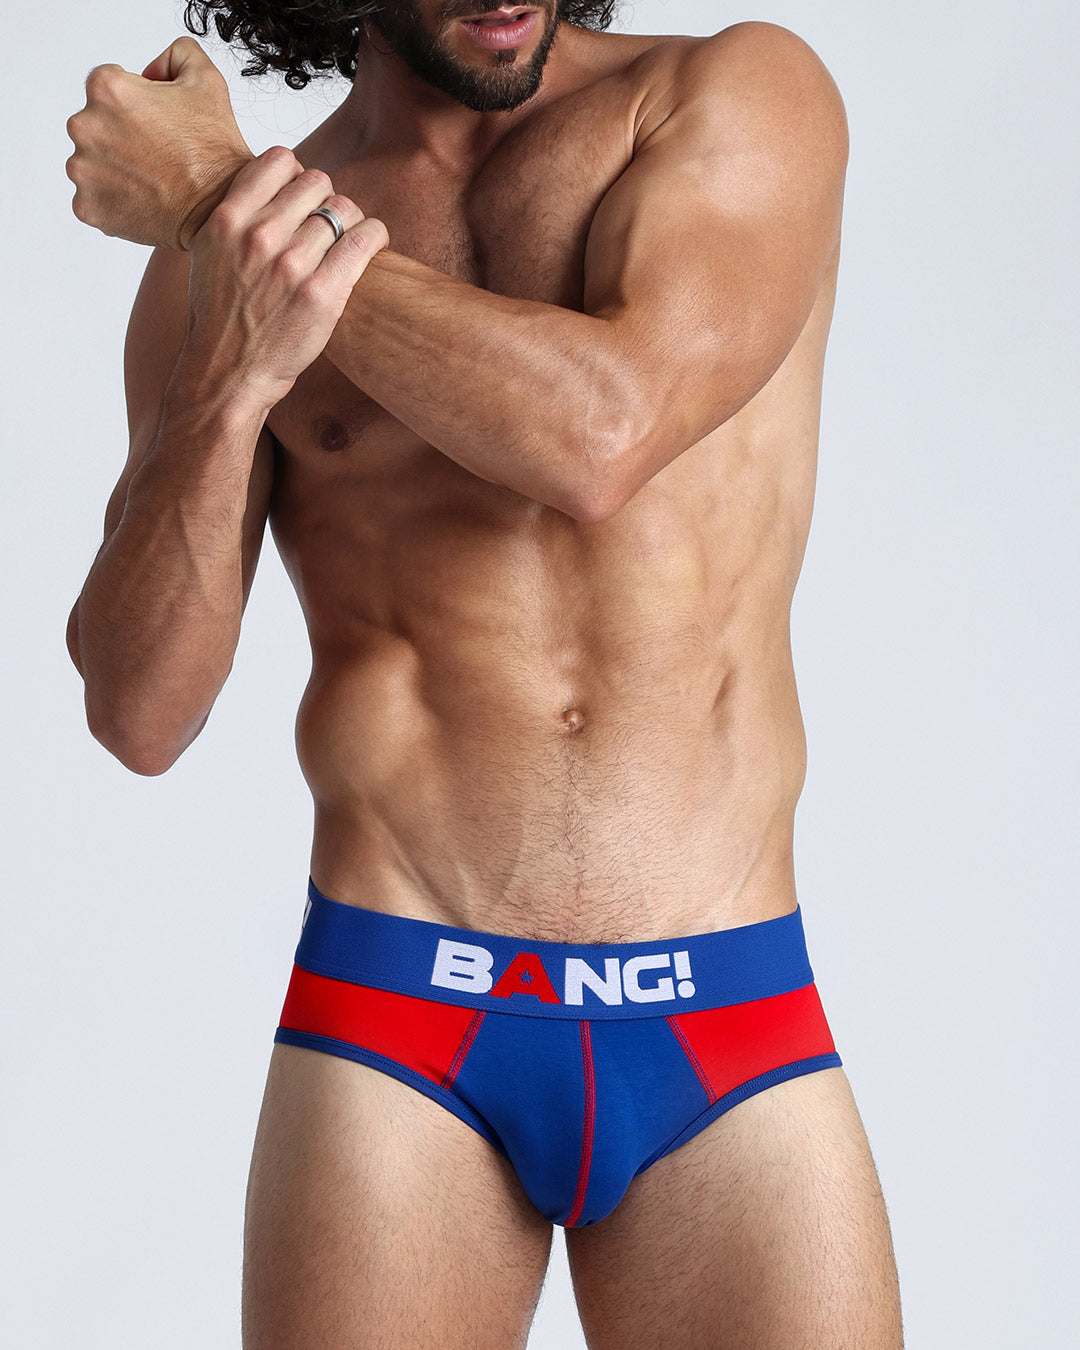 Frontal view of a sexy guy wearing a men's premium cotton brief in red and blue by the Bang! brand.